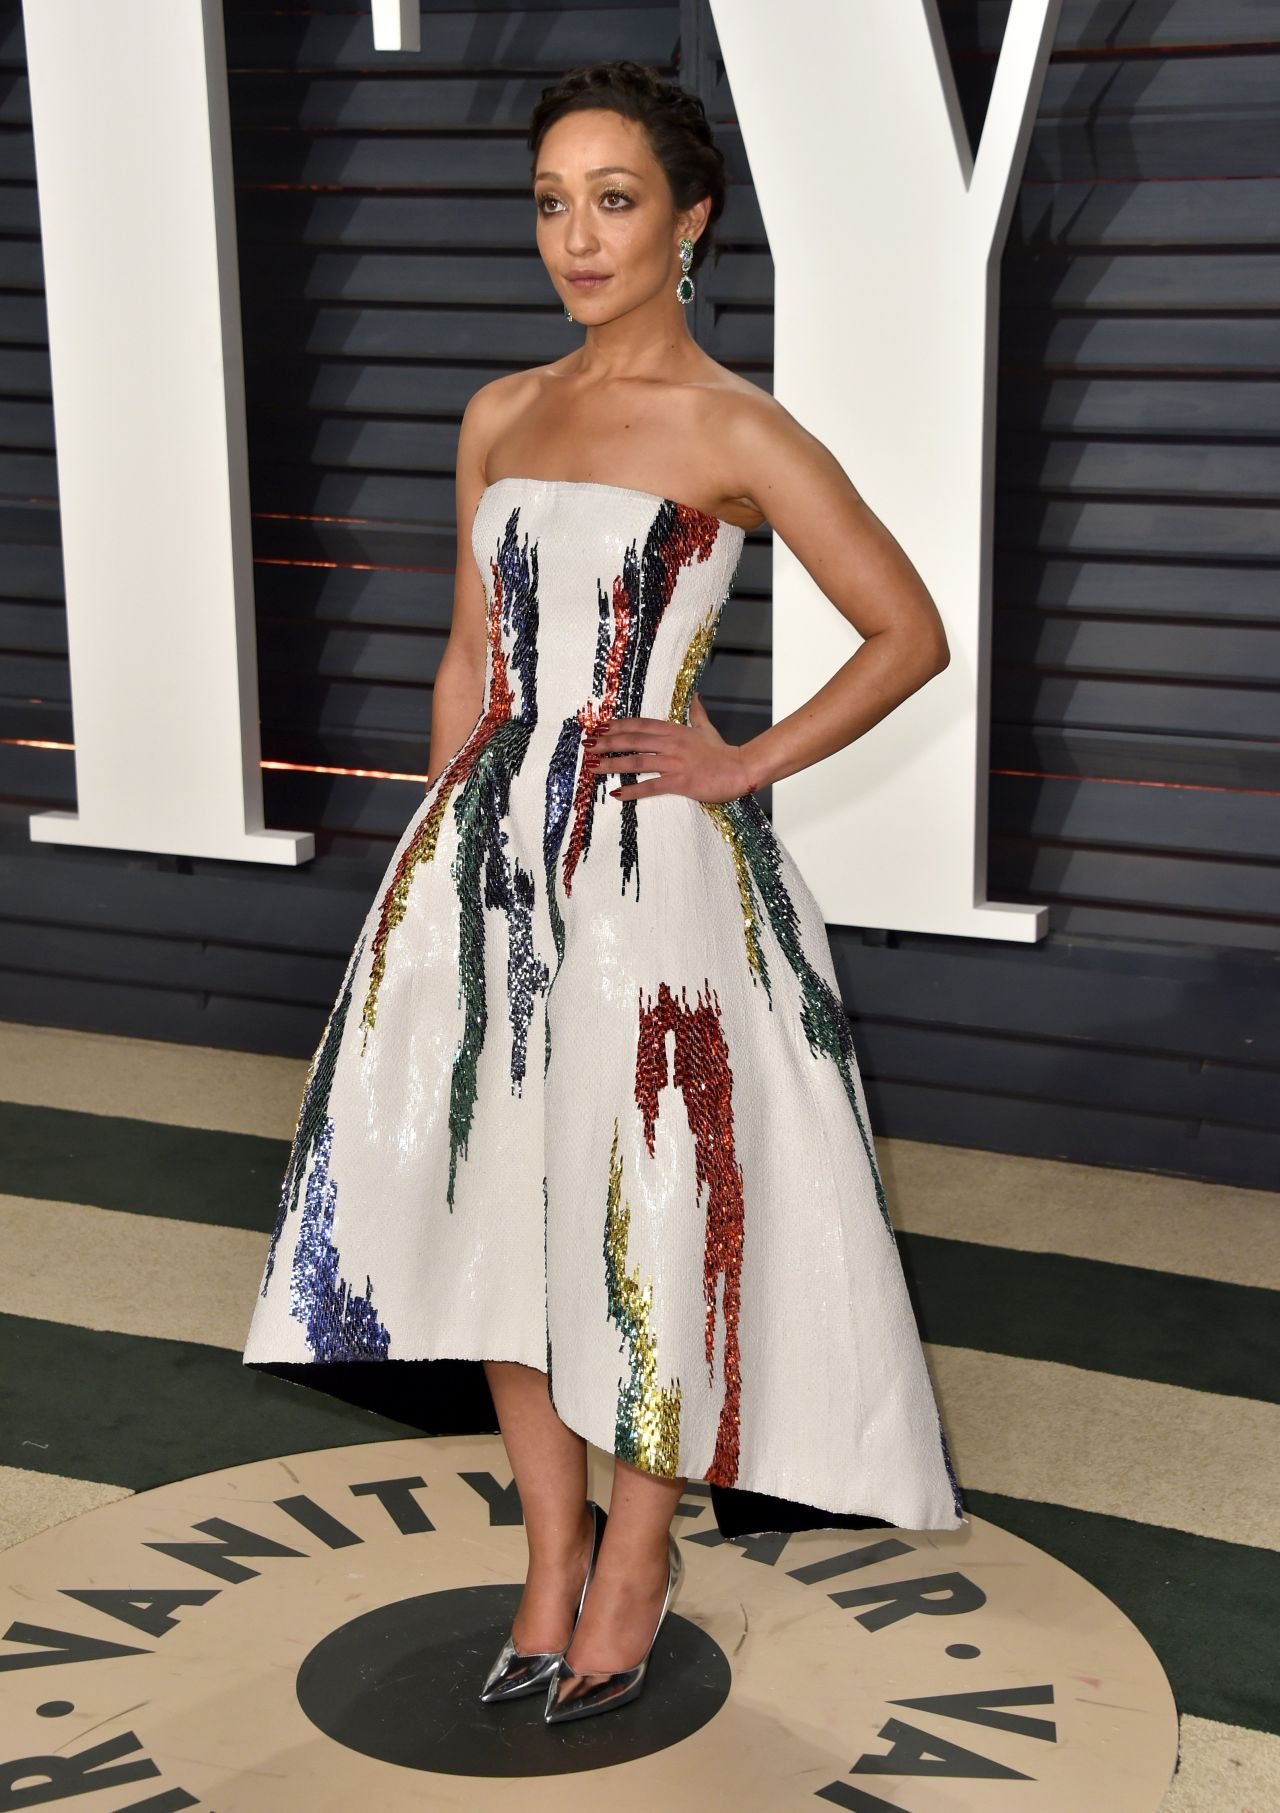 ruth-negga-at-vanity-fair-oscar-2017-party-in-los-angeles-11